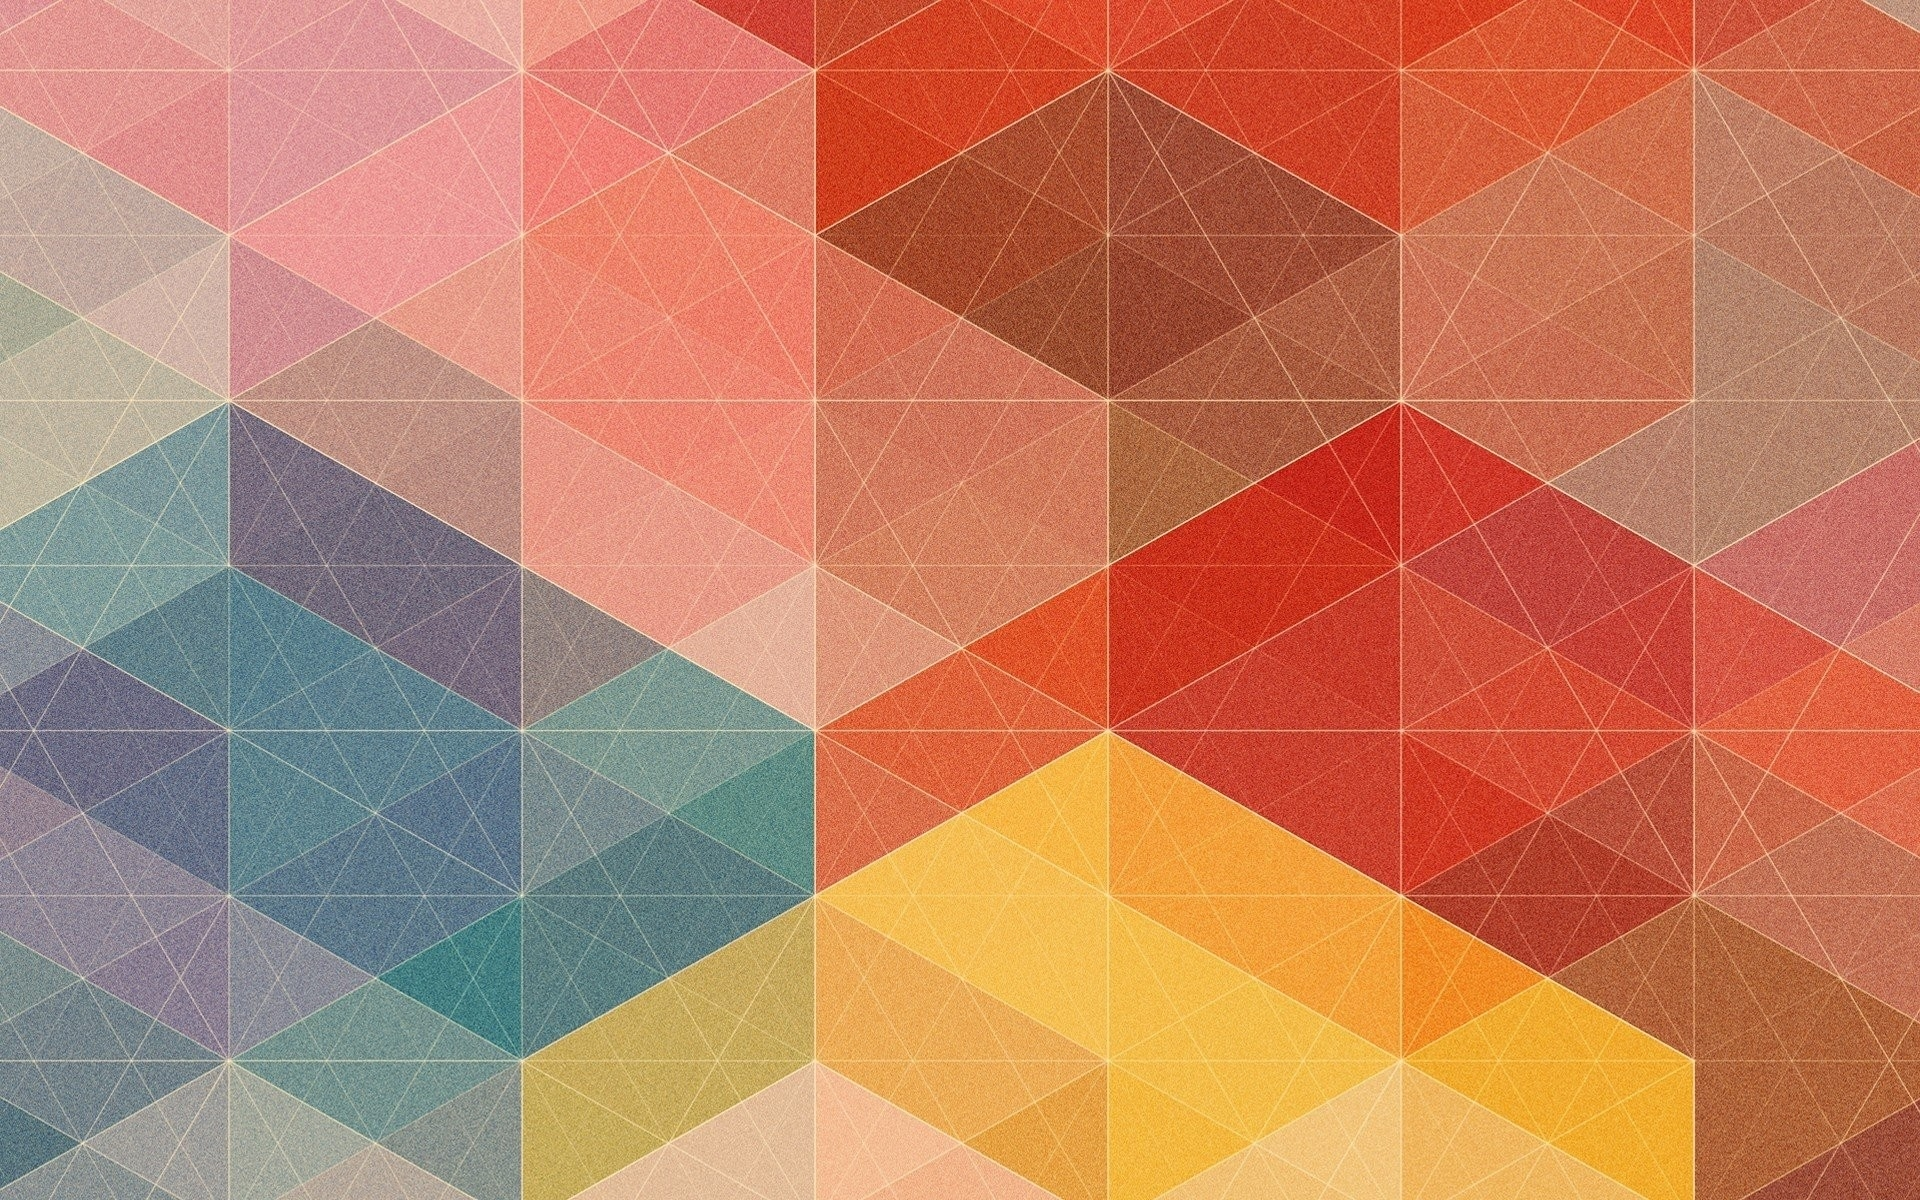 Geometric-Shapes-Design-Wallpaper-3 with regard to Geometric Shapes Design Wallpaper 24940